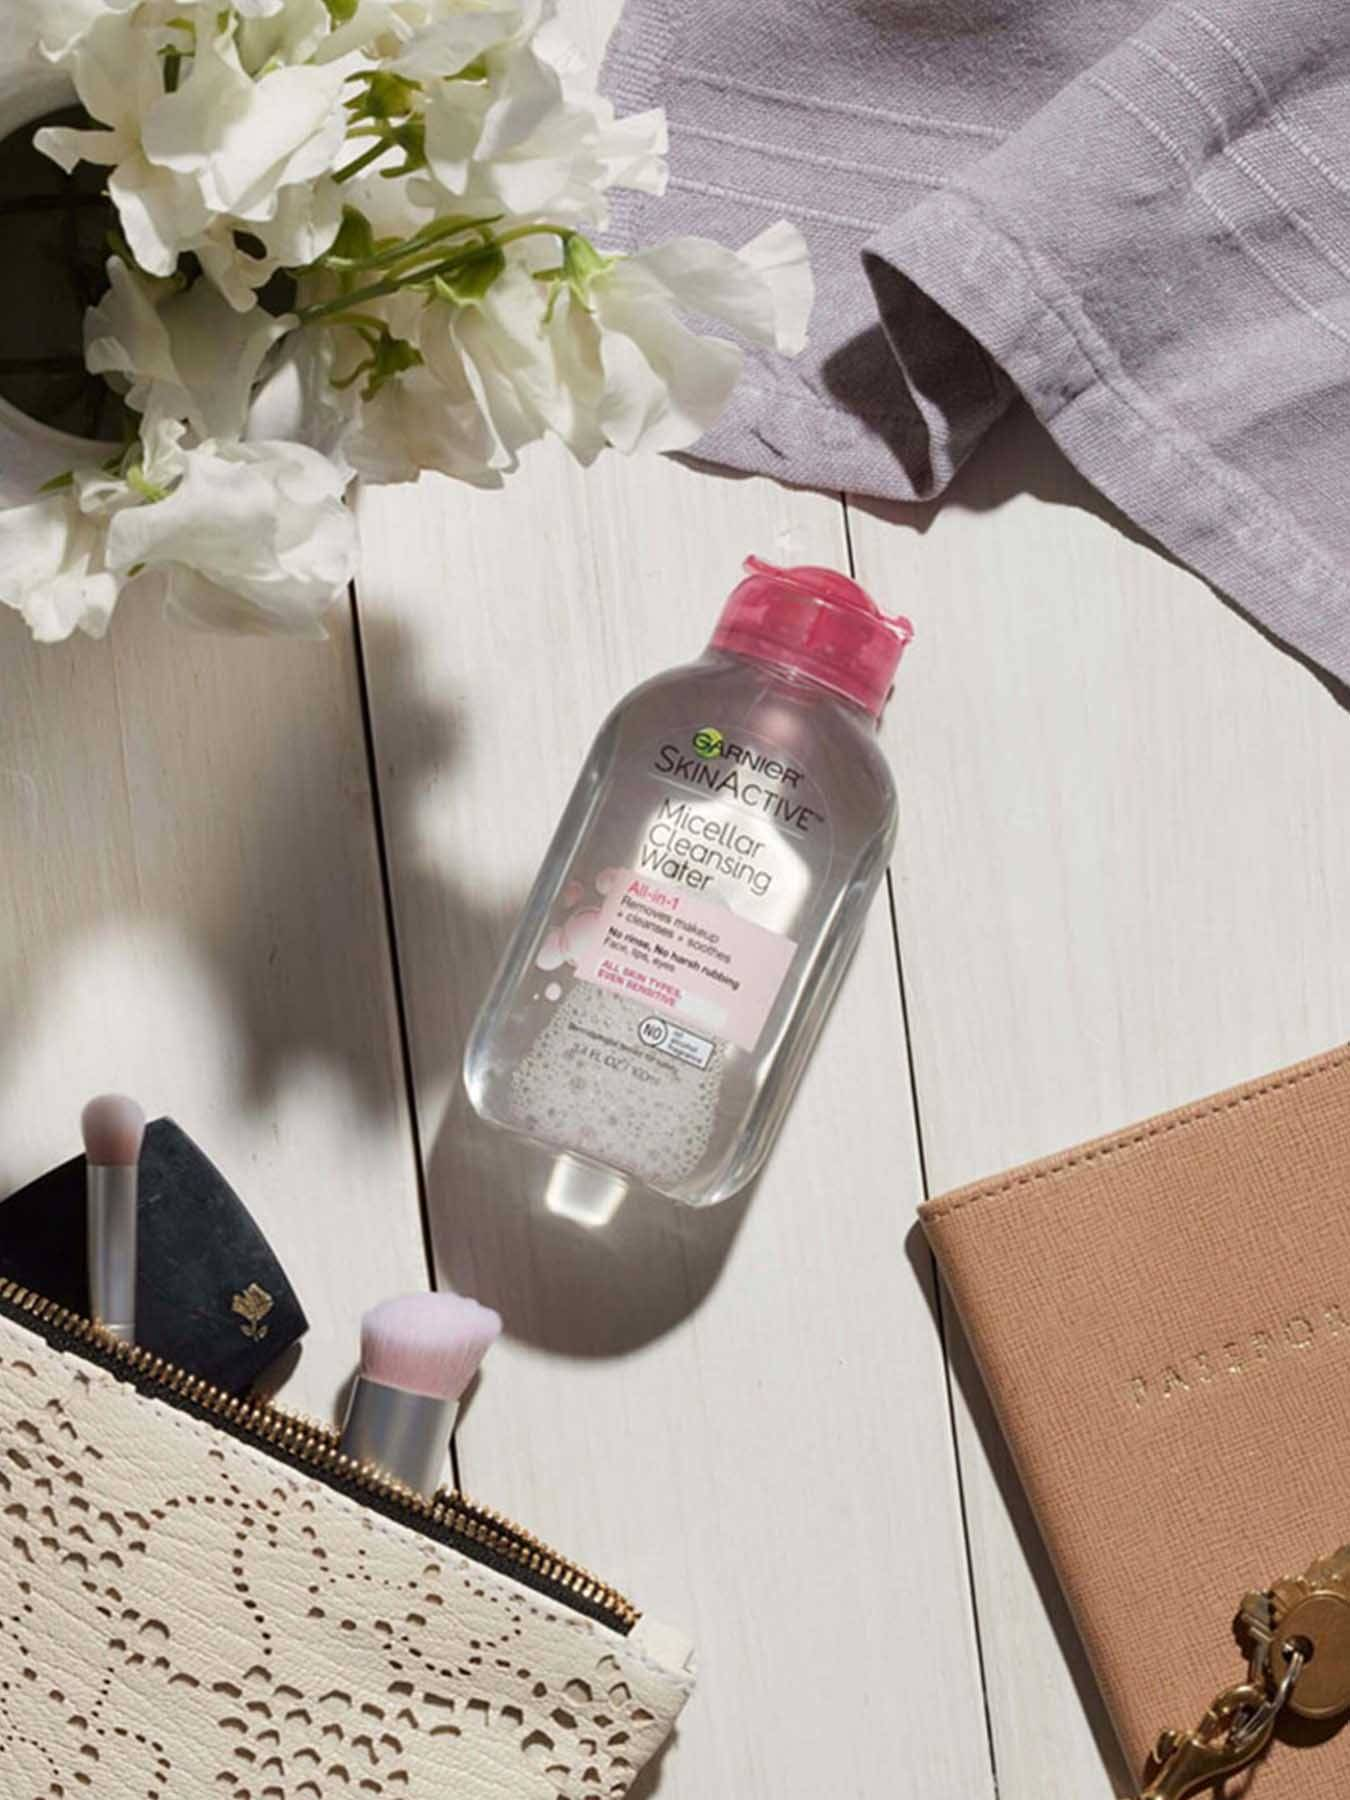 In Use view of Pink Cap Cleansing Water All-in-1, All Skin Types.